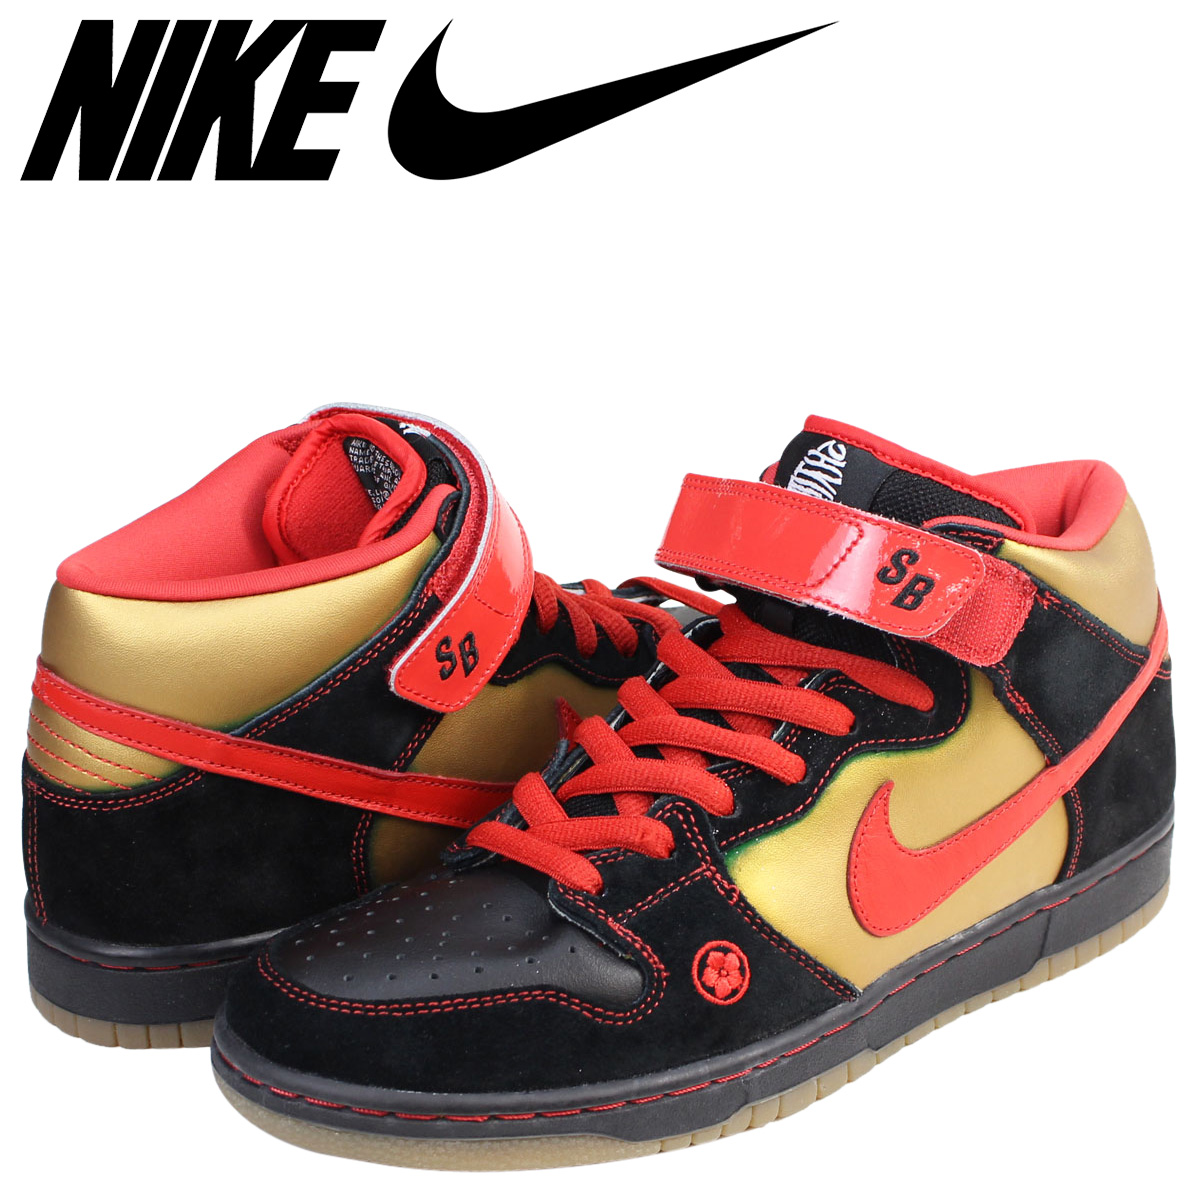 best website e899e 83849 NIKE Nike SB dunk sneakers DUNK MID PRO MONEY CAT men 314,383-061 shoes  black